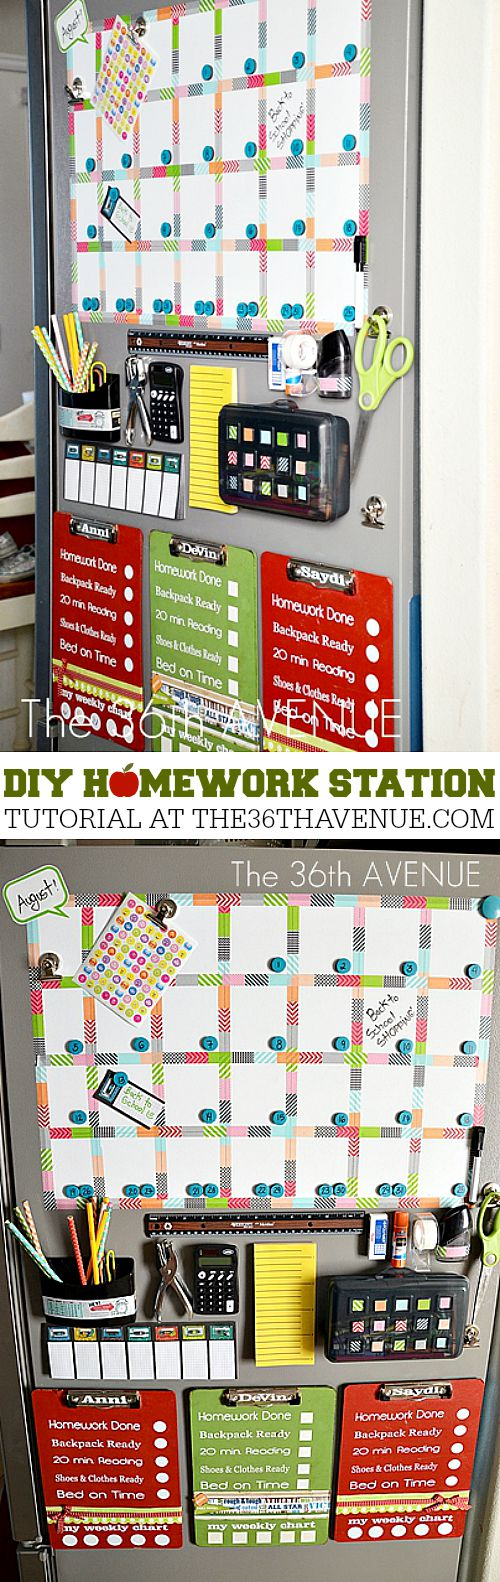 DIY Homework Station at the36thavenue.com Pin it now and make it later!